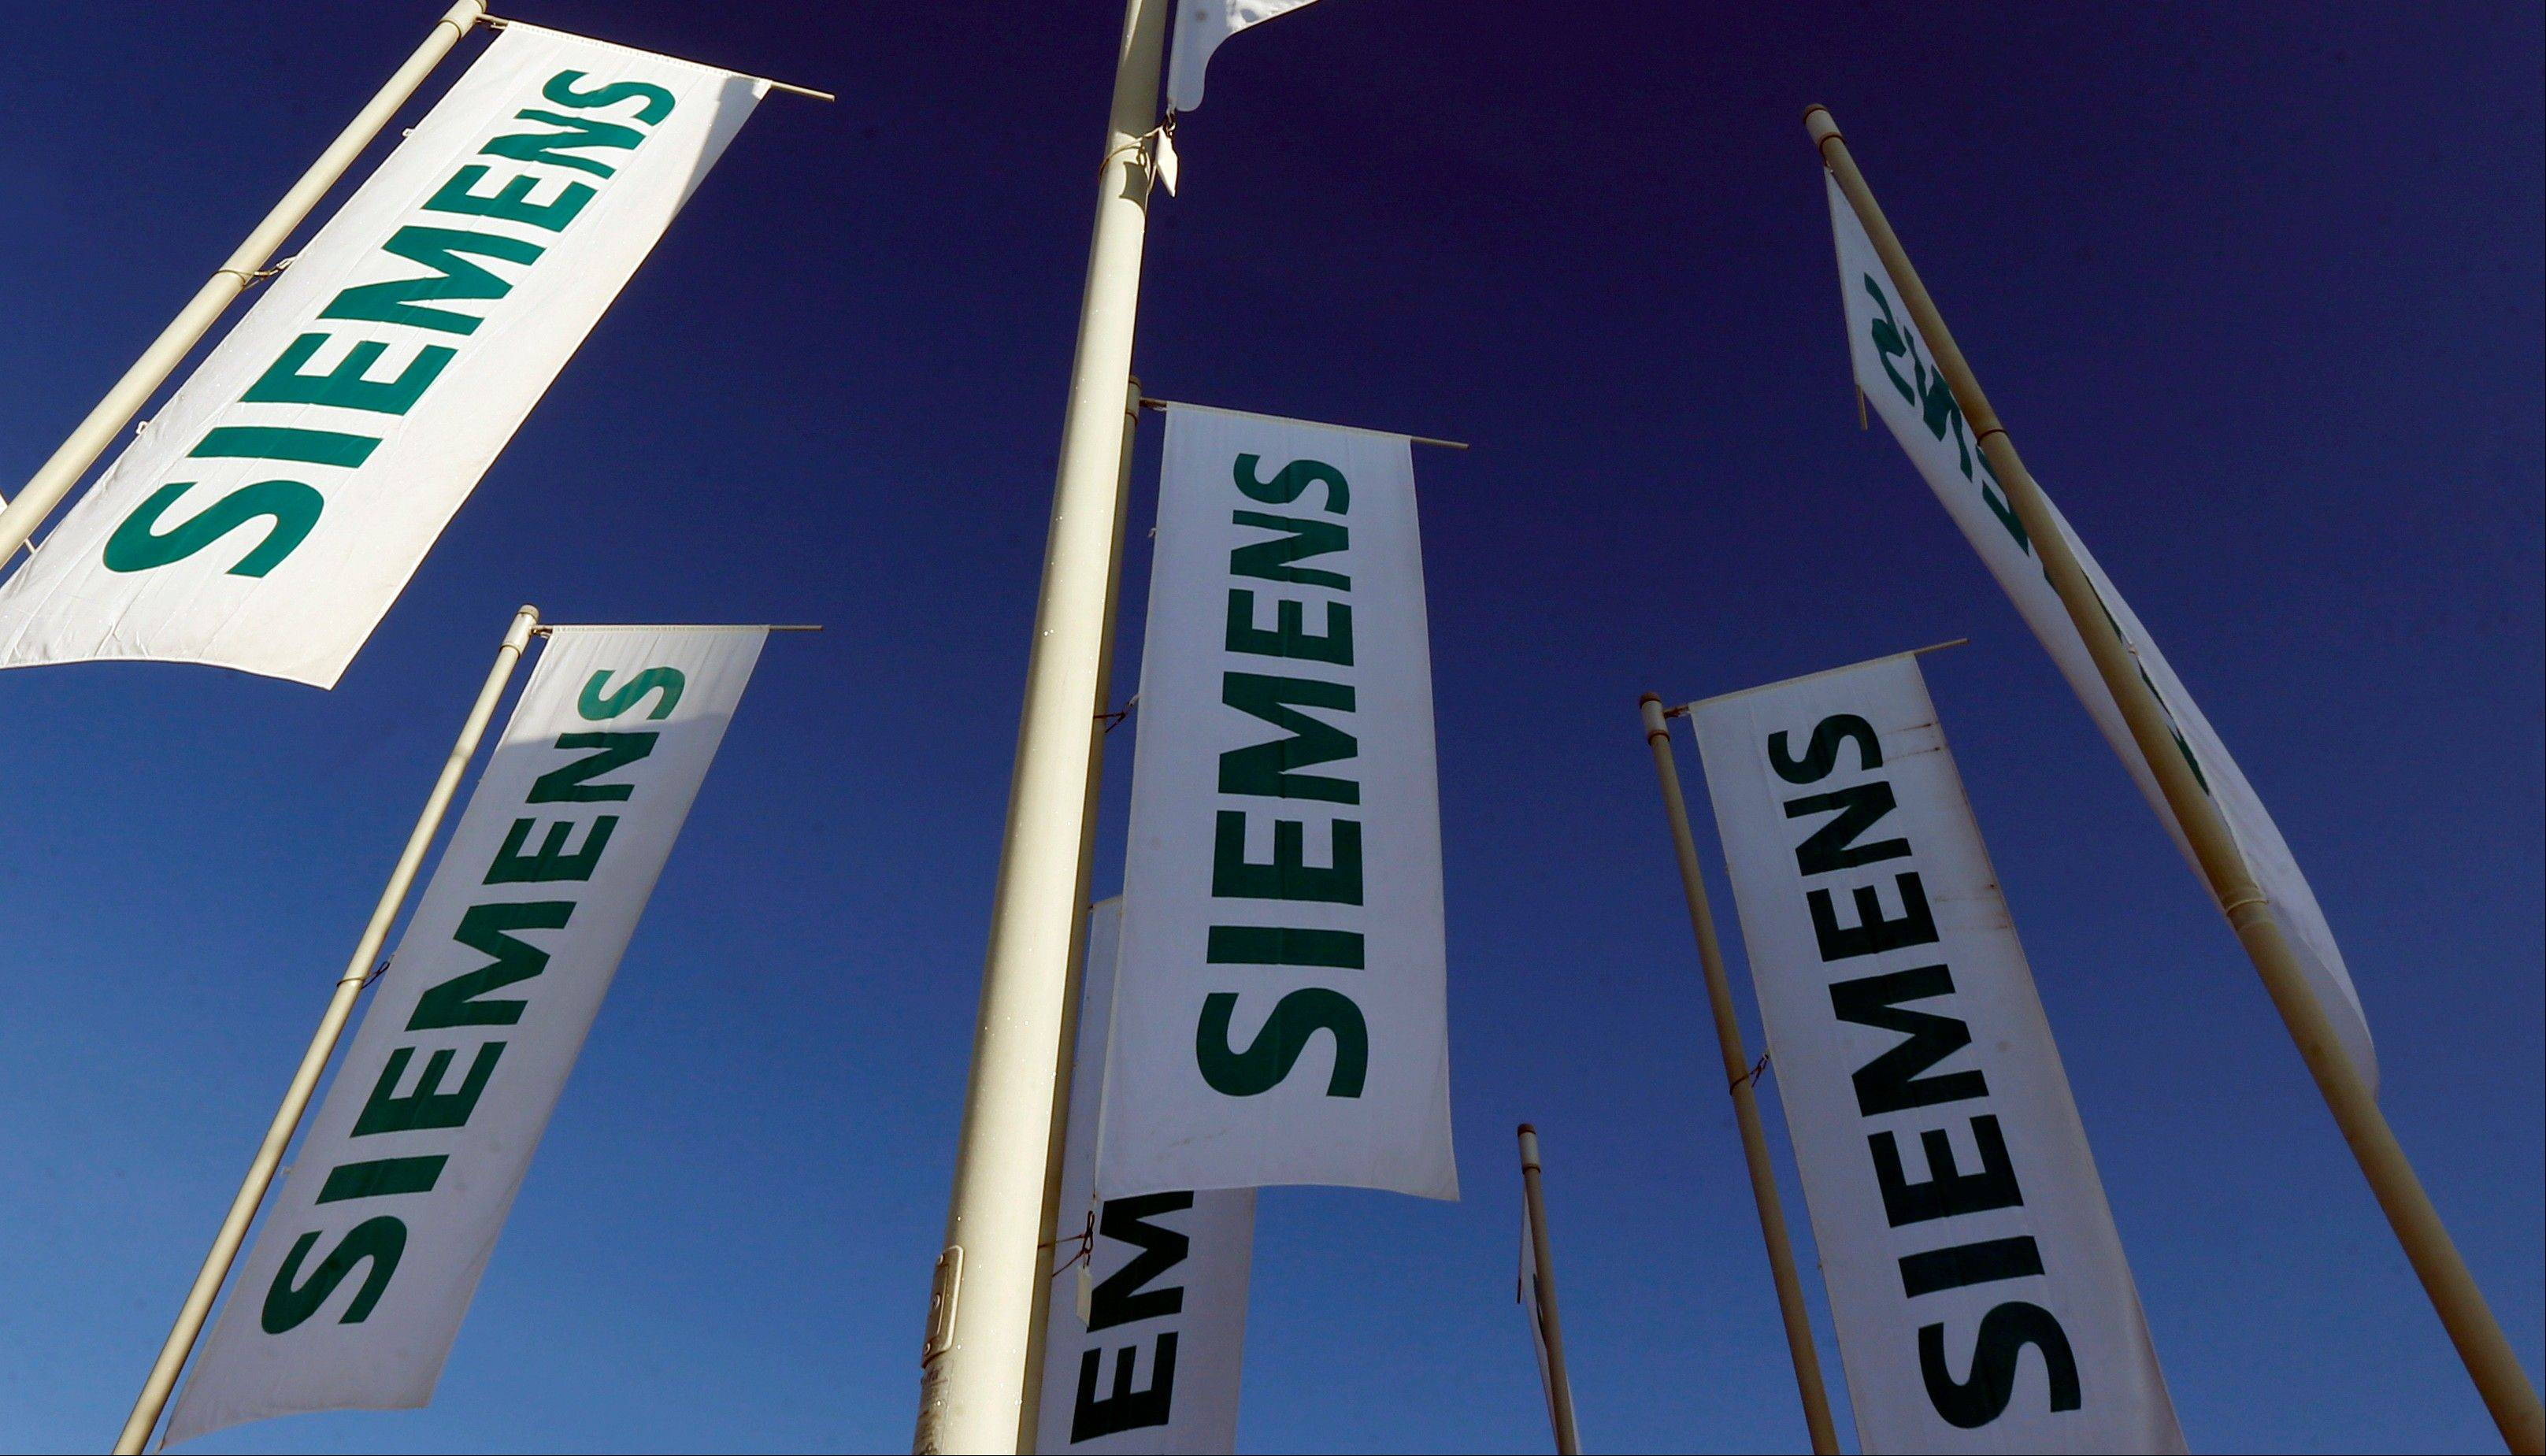 Locally Siemens has operations in Buffalo Grove, Deerfield, Chicago, Hoffman Estates, Schaumburg, Glen Ellyn, Elk Grove, Mundelein, Oak Brook, Rolling Meadows and Wood Dale